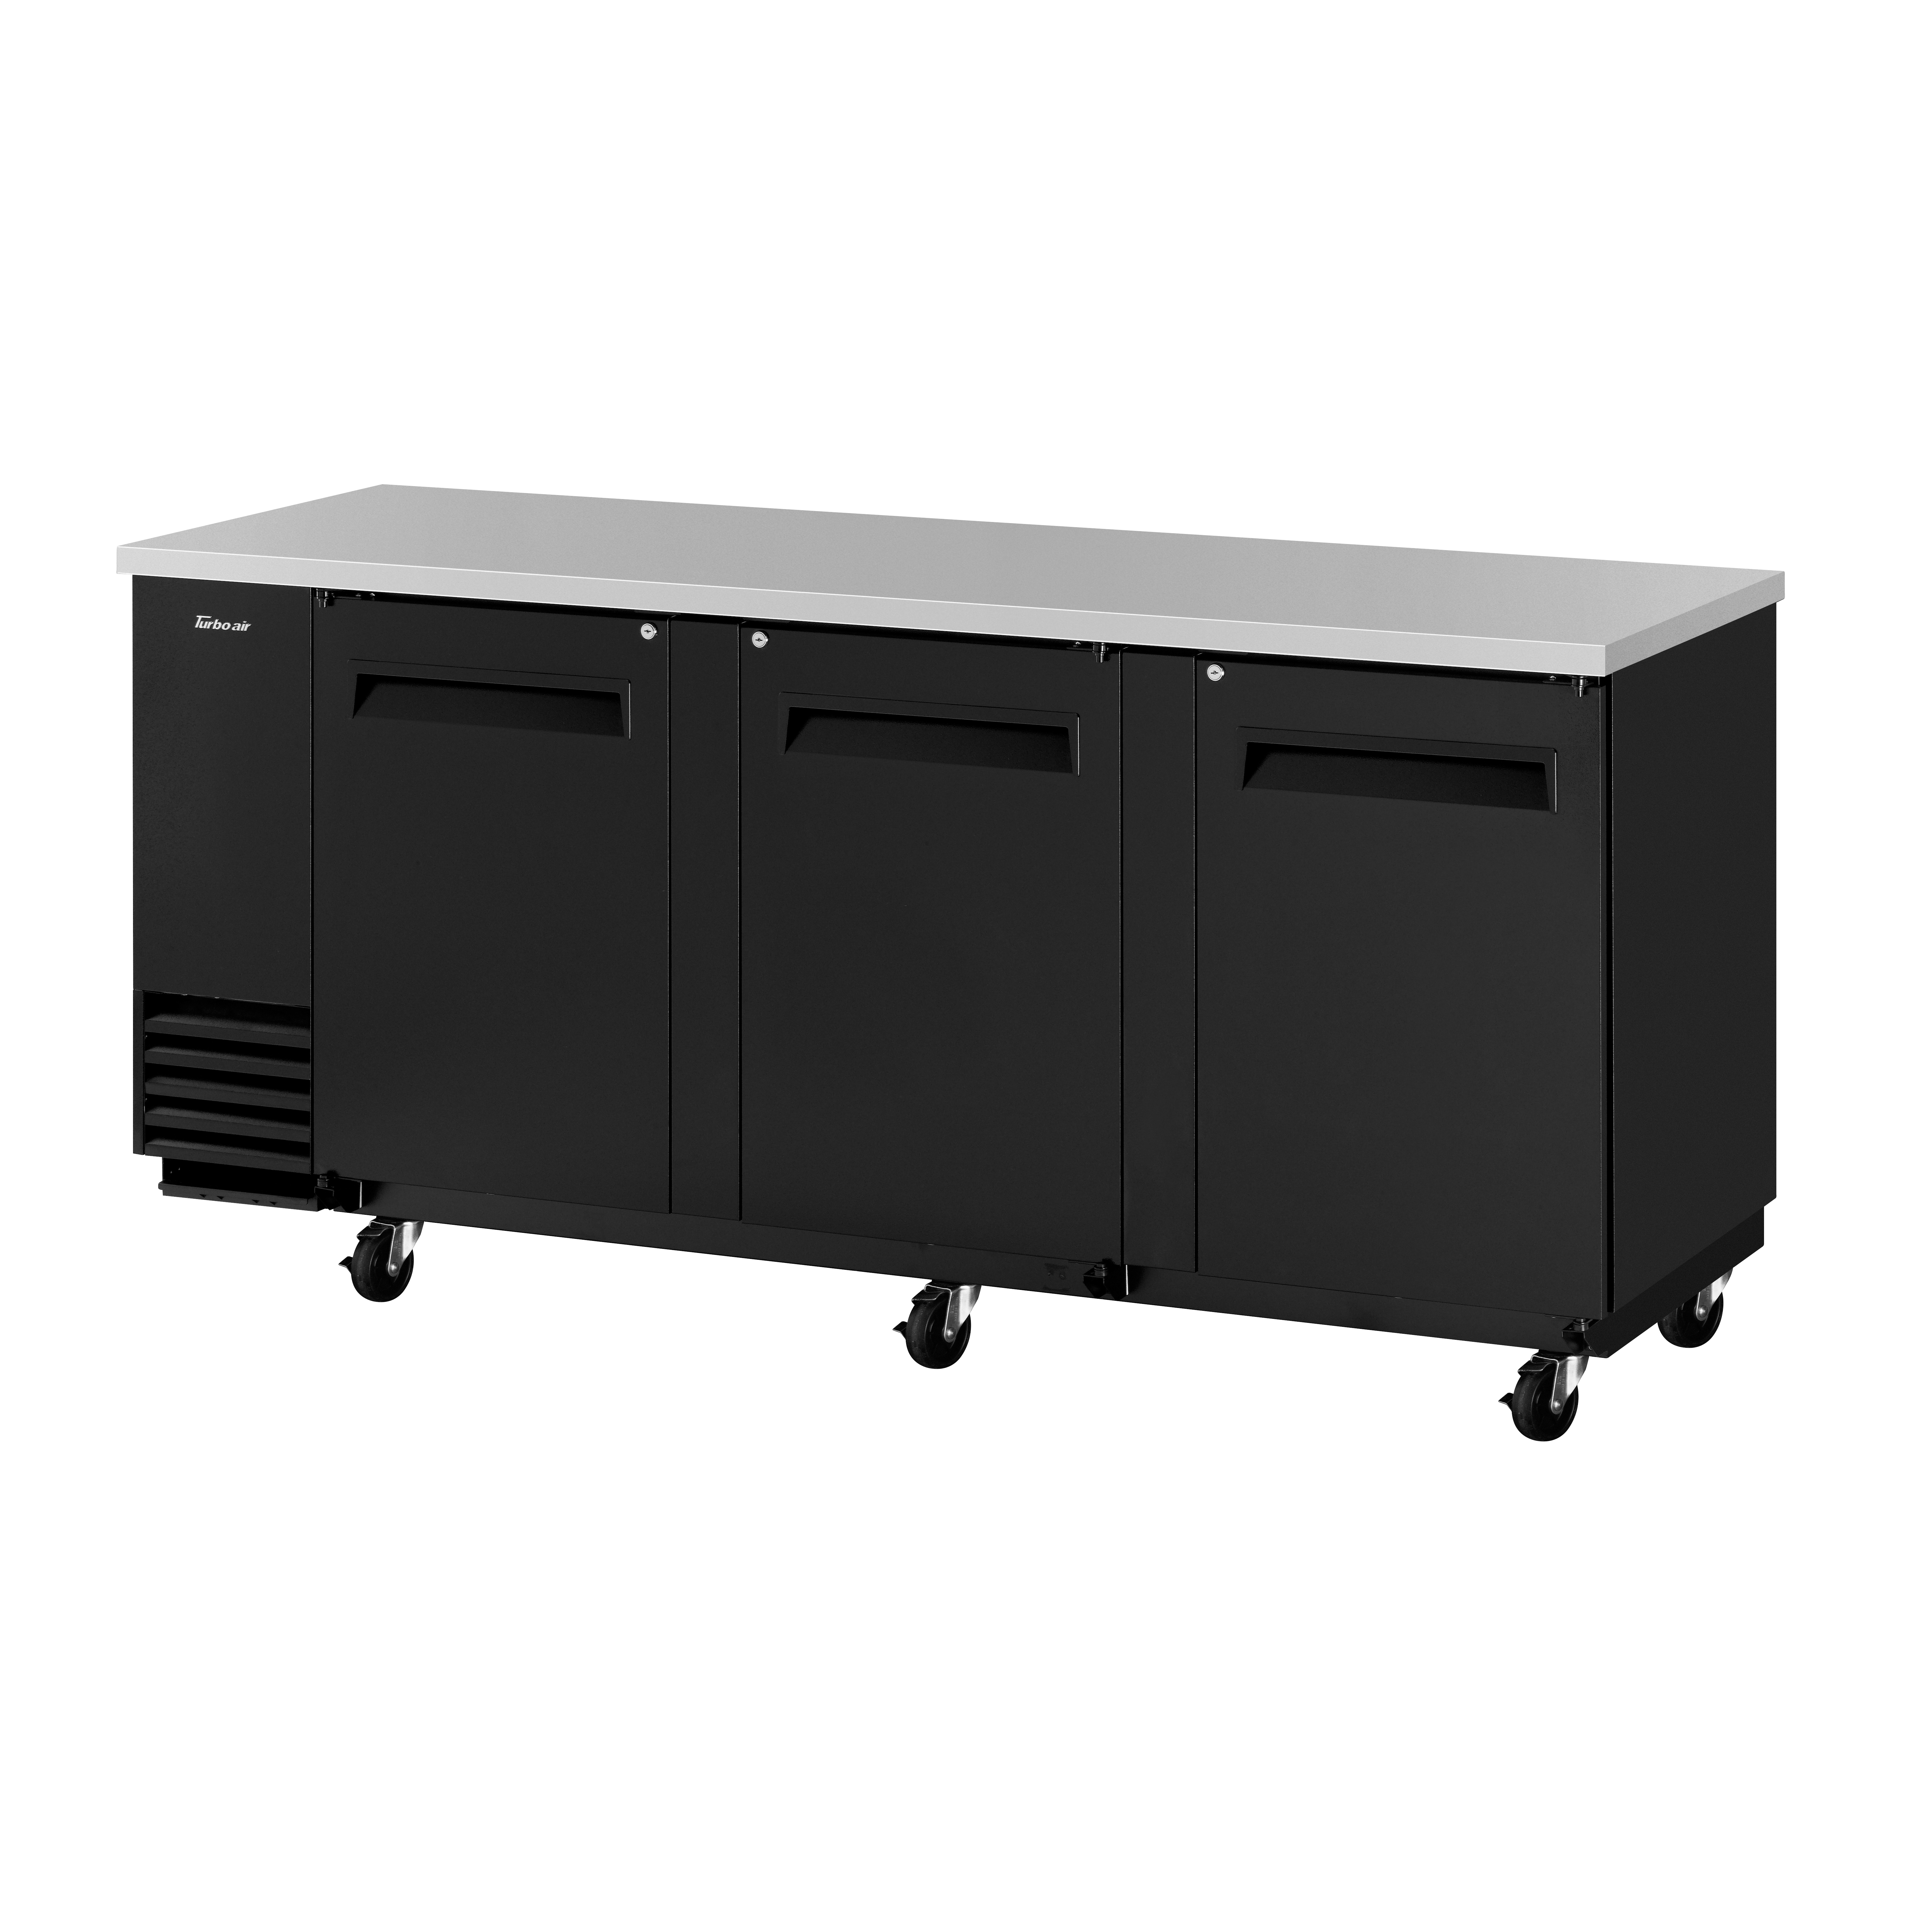 Turbo Air TBB-4SB-N back bar cabinet, refrigerated